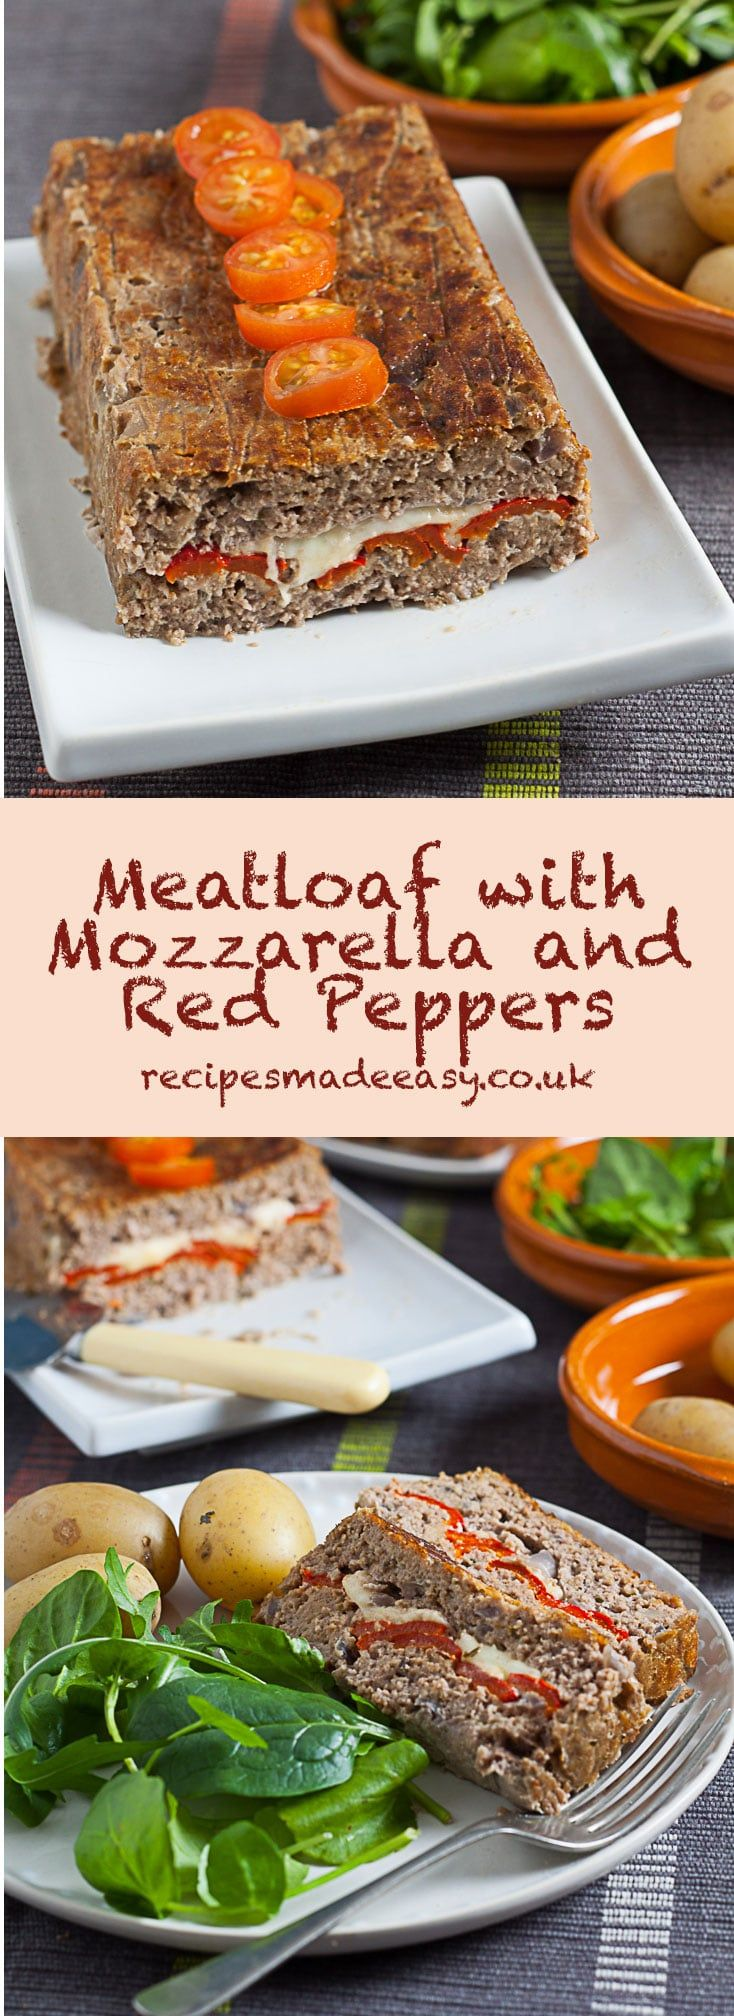 Meatloaf makes an economical and very tasty family meal. For this recipe, I have pimped a simple meatloaf recipe with the addition of mozzarella and peppers to add additional flavour, texture and colour. The recipe is still quick and easy to prepare but the end result is even better. This is comfort food at its best.  #picnic #easymeatloaf #easyrecipe #comfortfood  via @jacdotbee